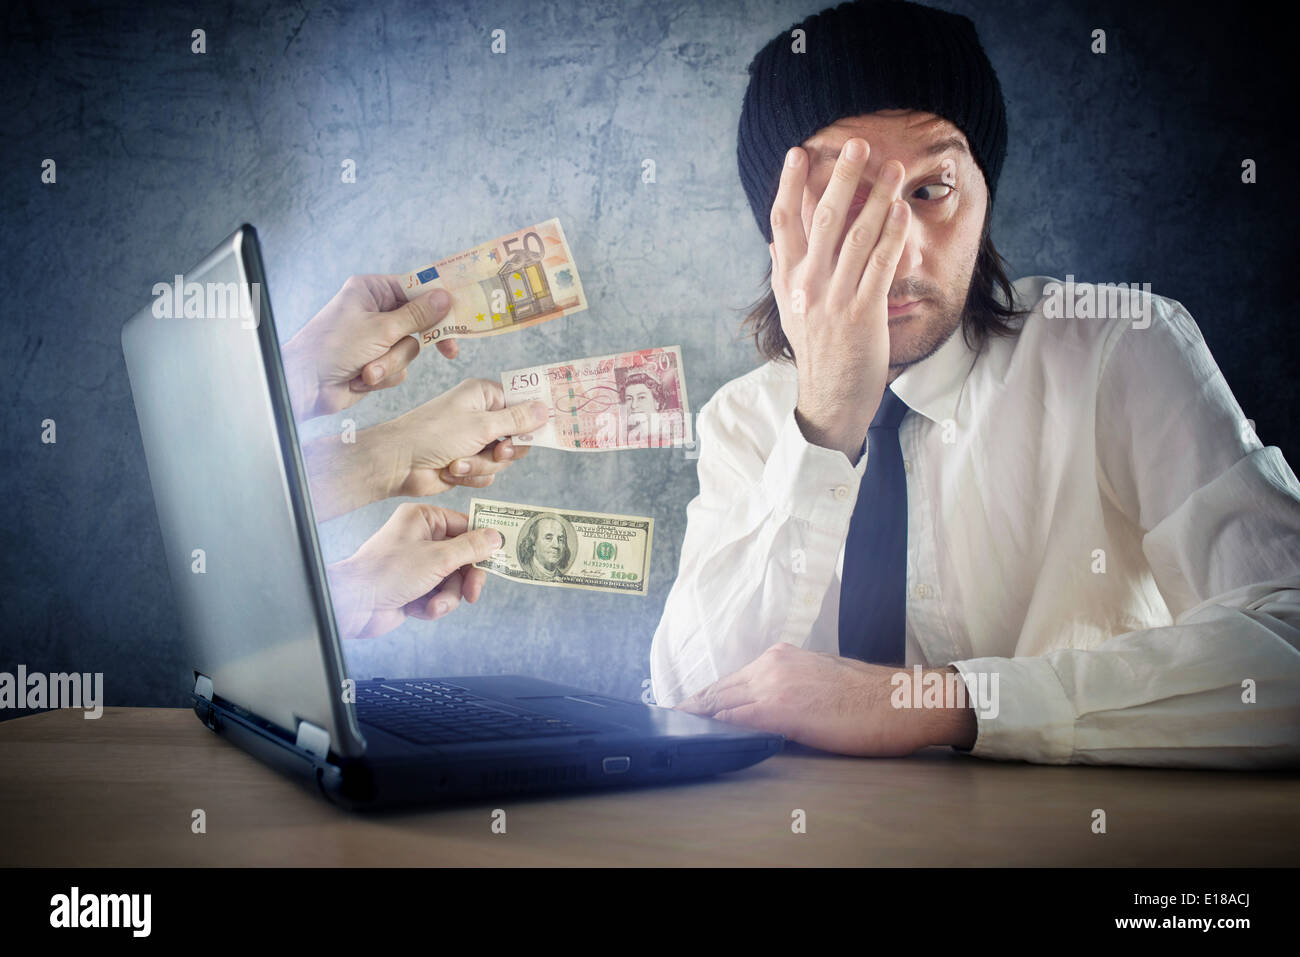 On line money funds, surprised businessman receiving cash over internet. Earning money on network. - Stock Image